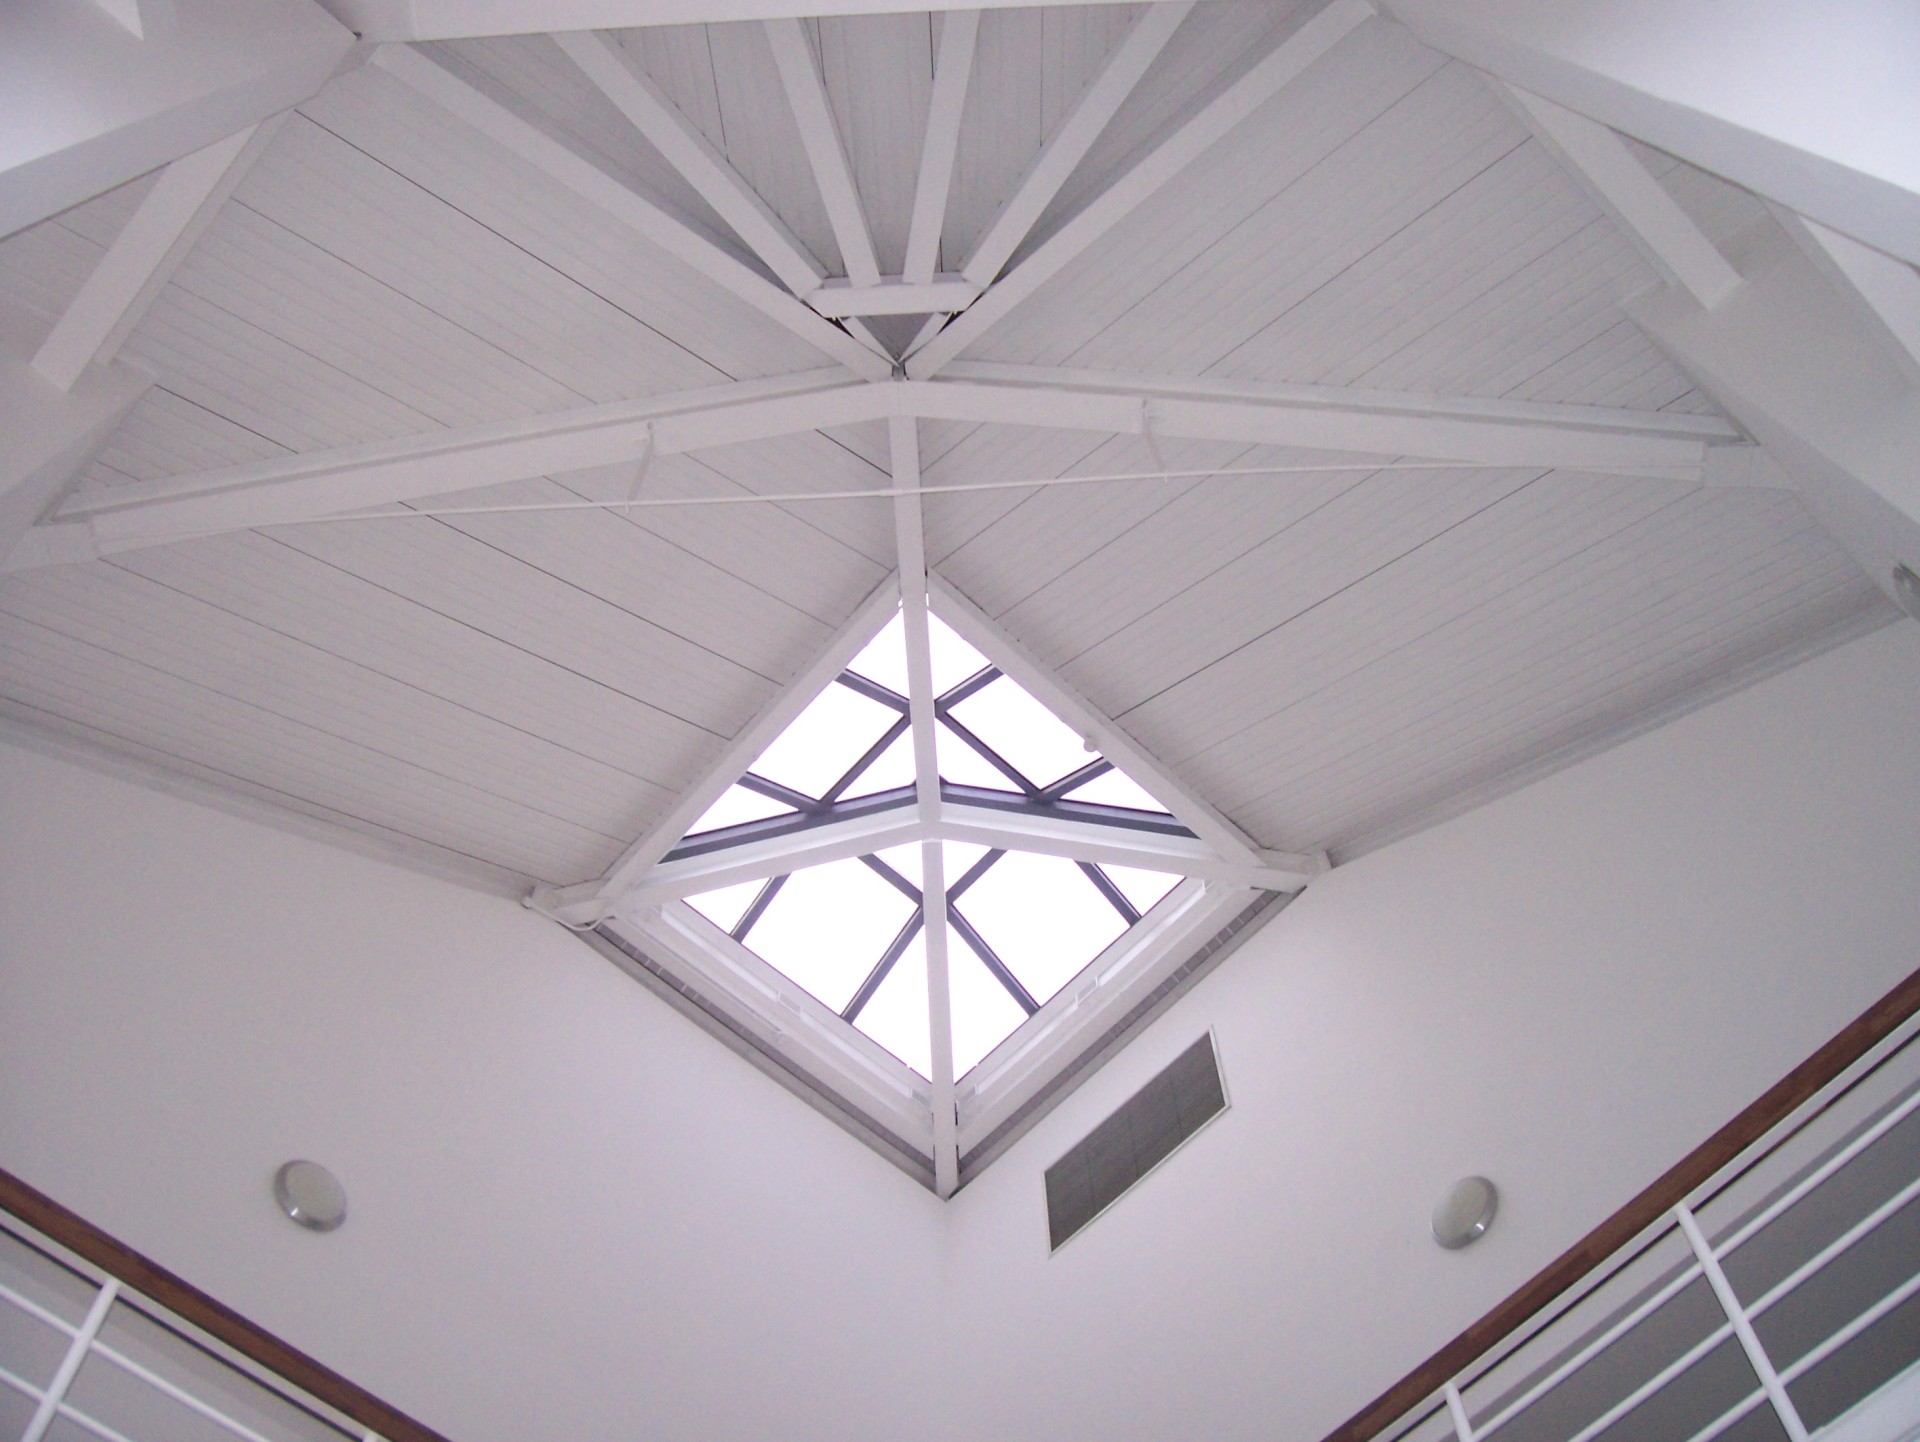 Architectural design of vaulted ceiling